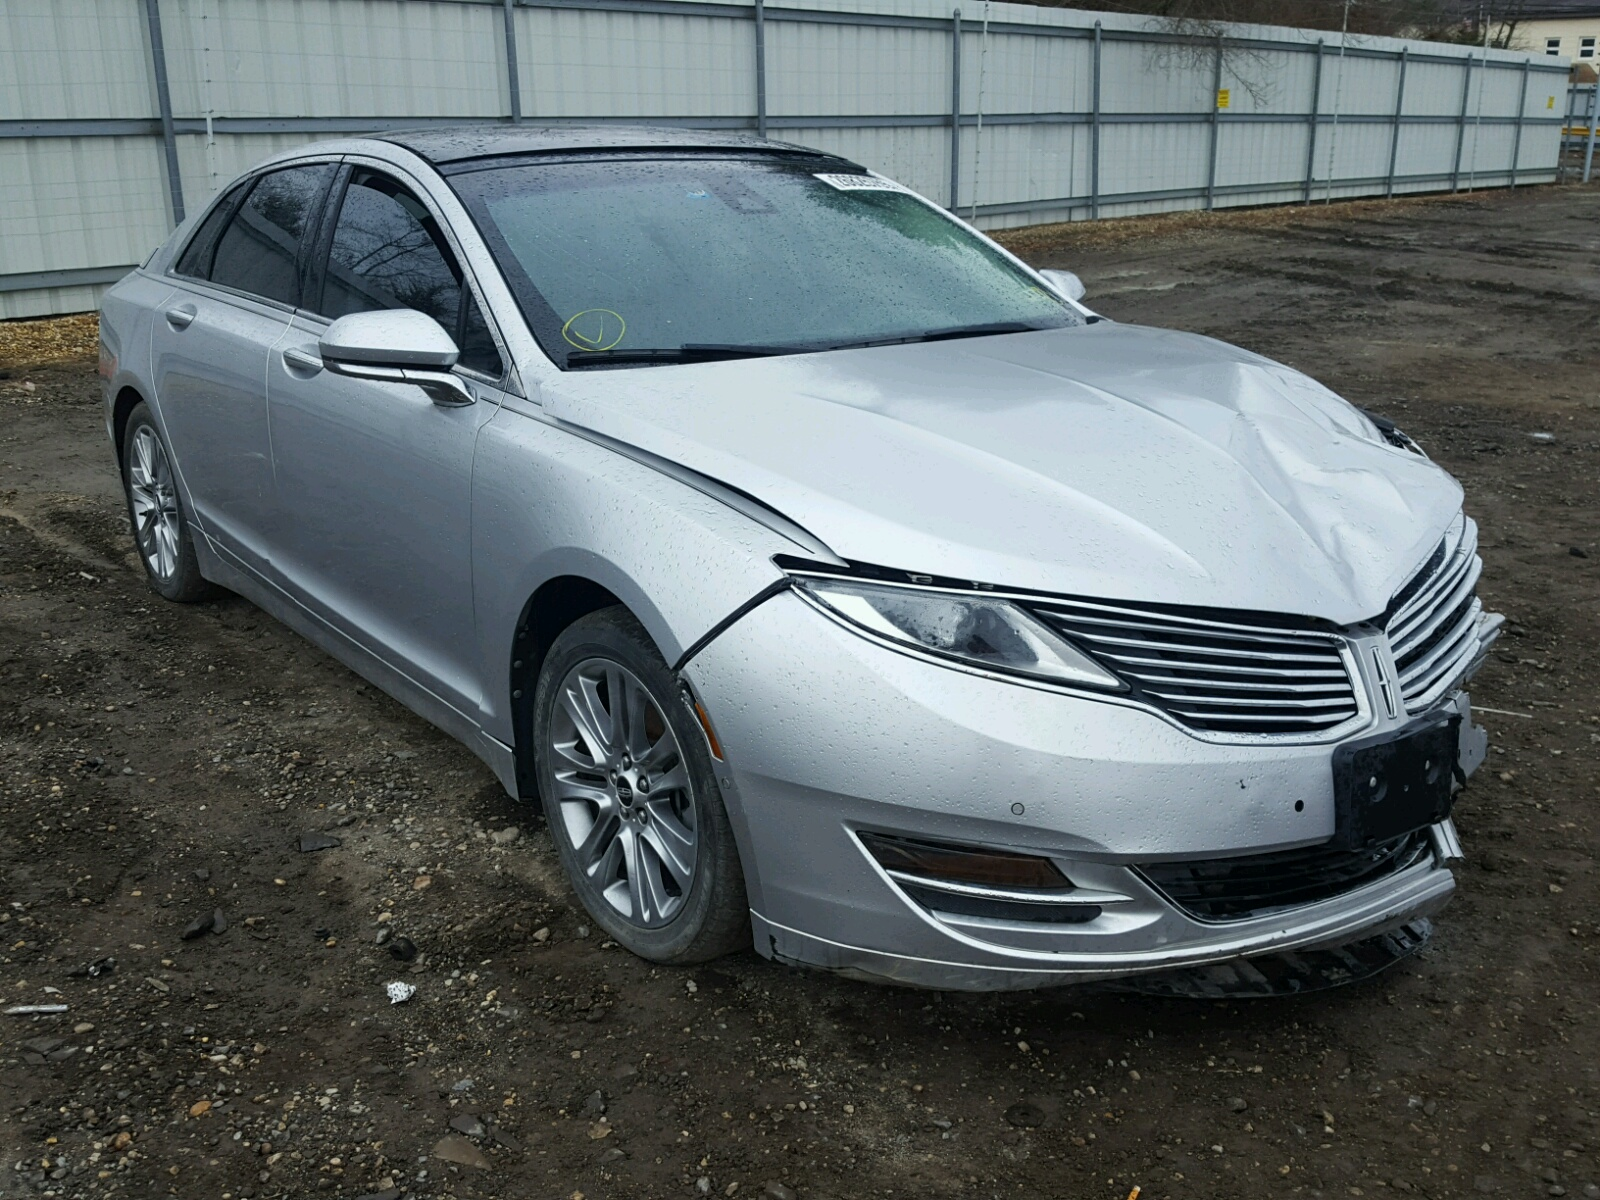 dope hybrid lincoln sale dream mkz white for pin pinterest cars